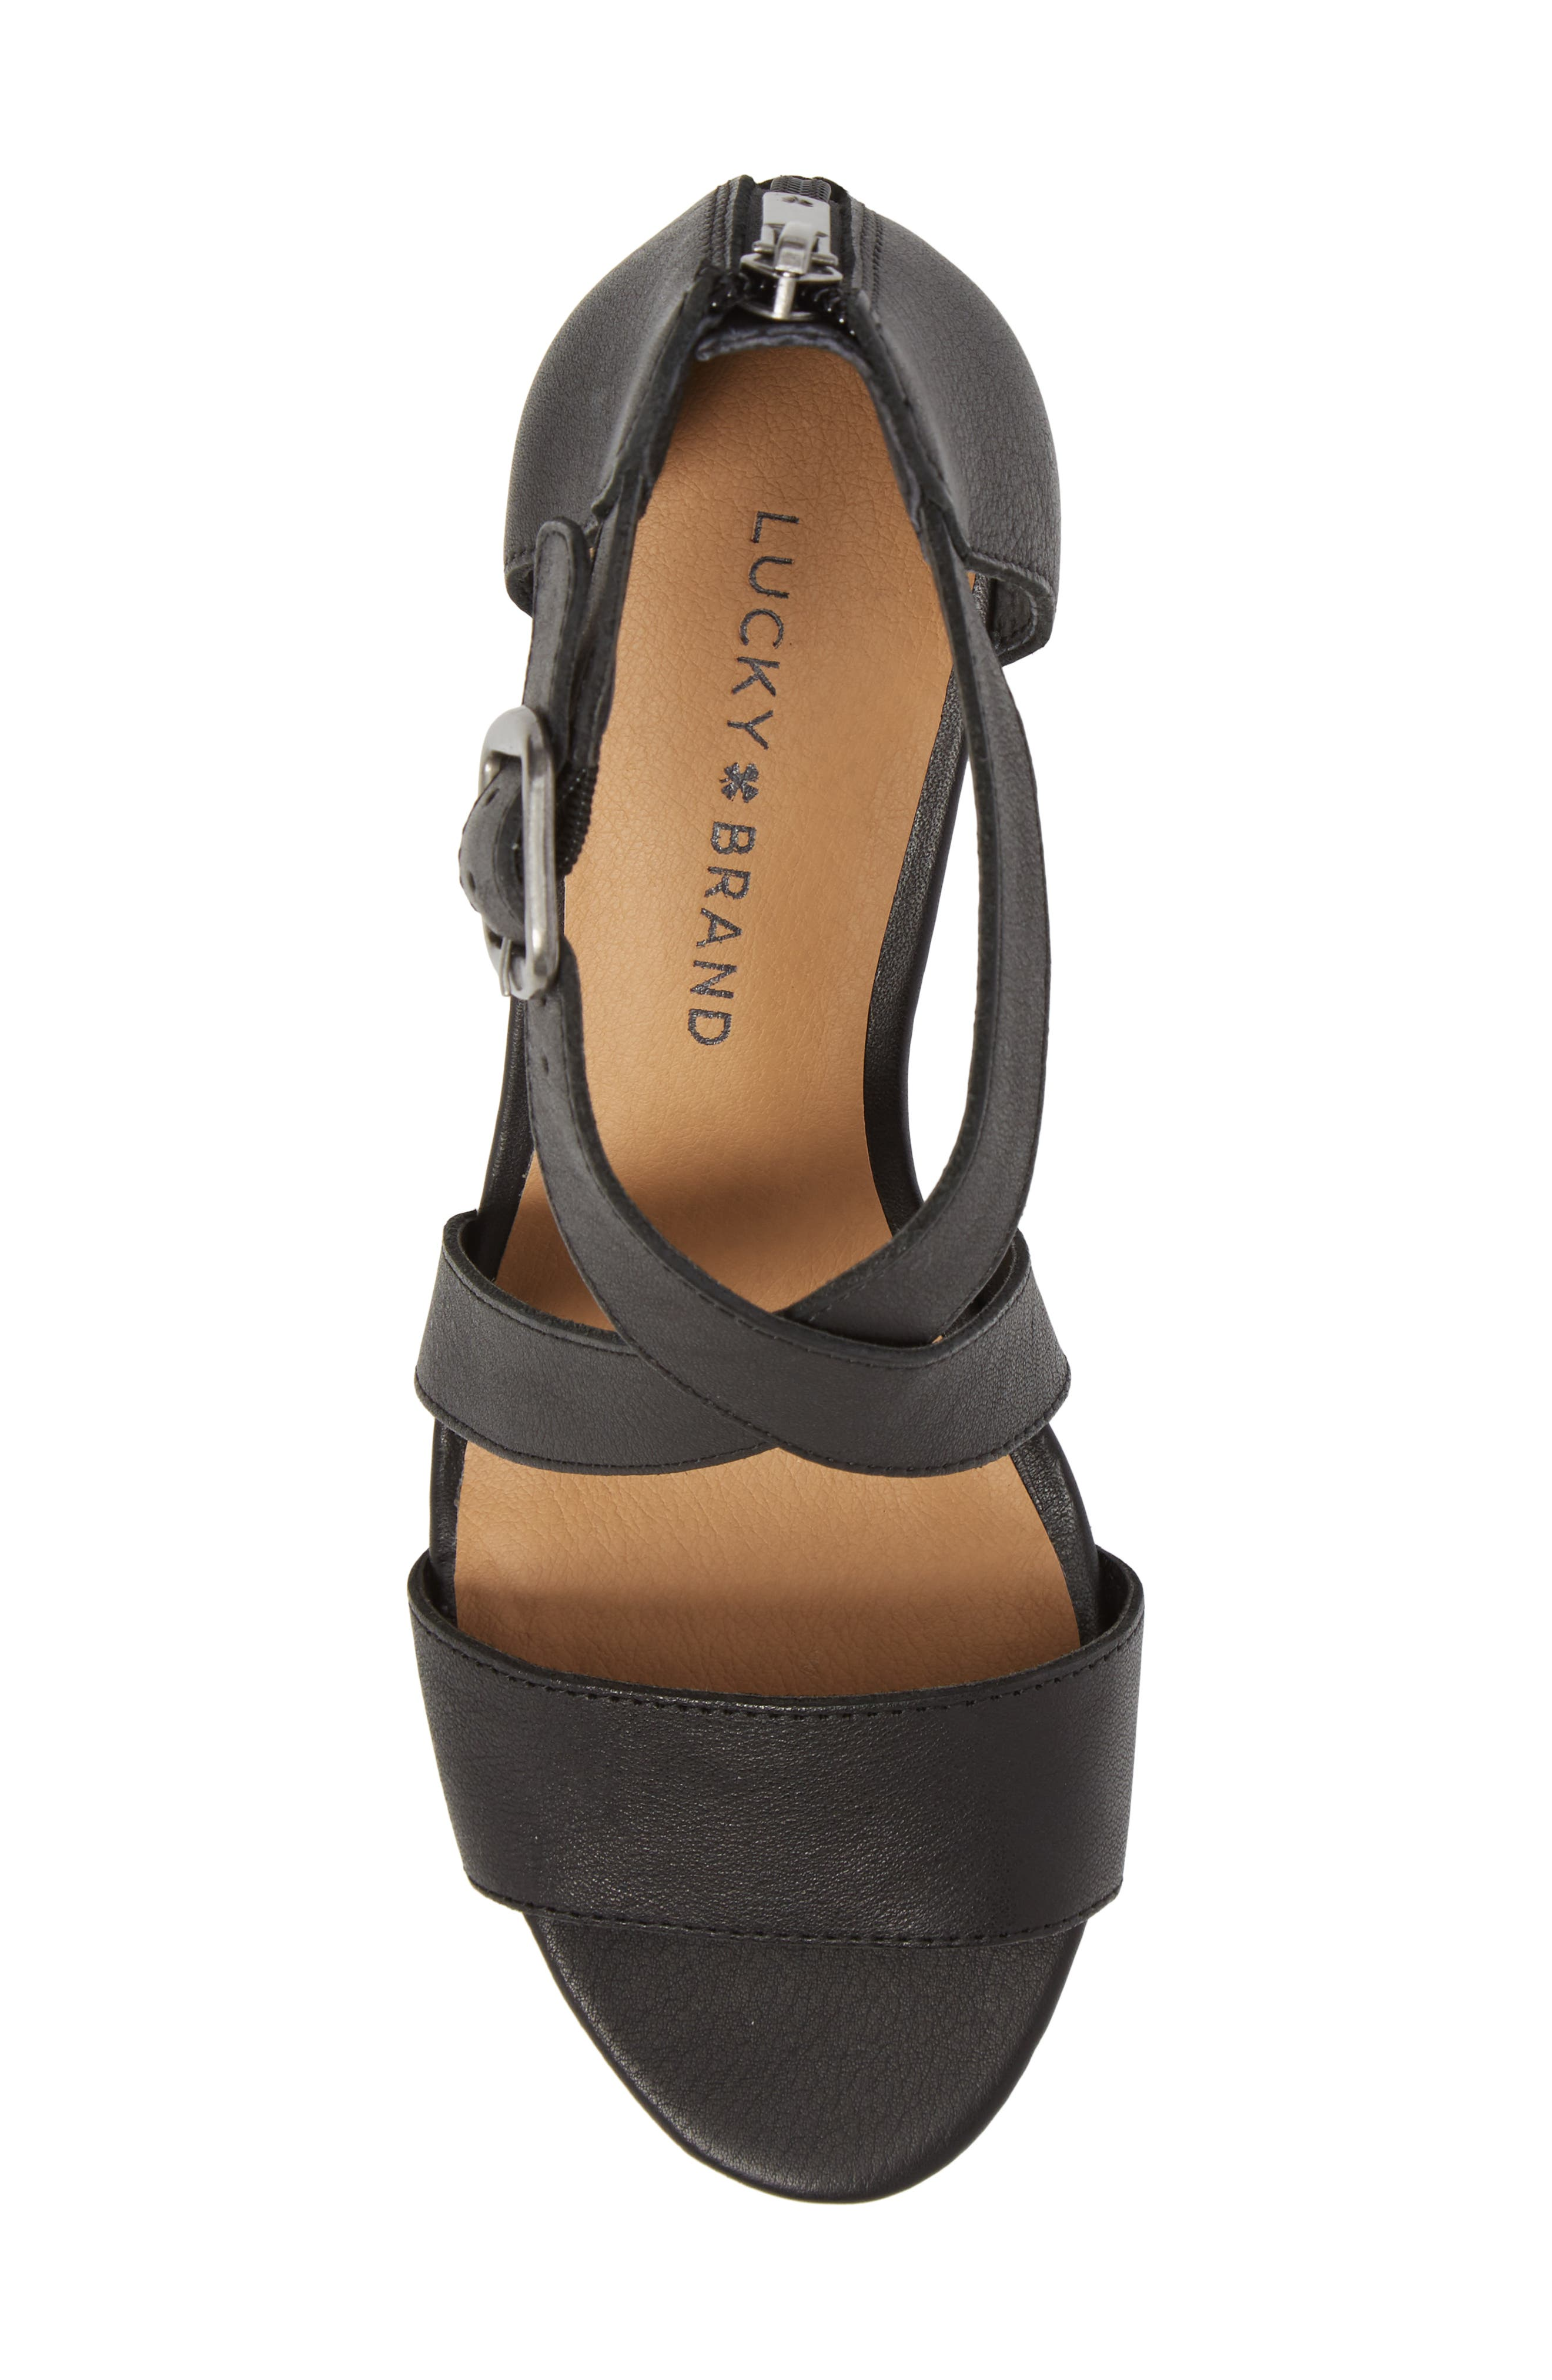 Jestah Wedge Sandal,                             Alternate thumbnail 5, color,                             Black Leather